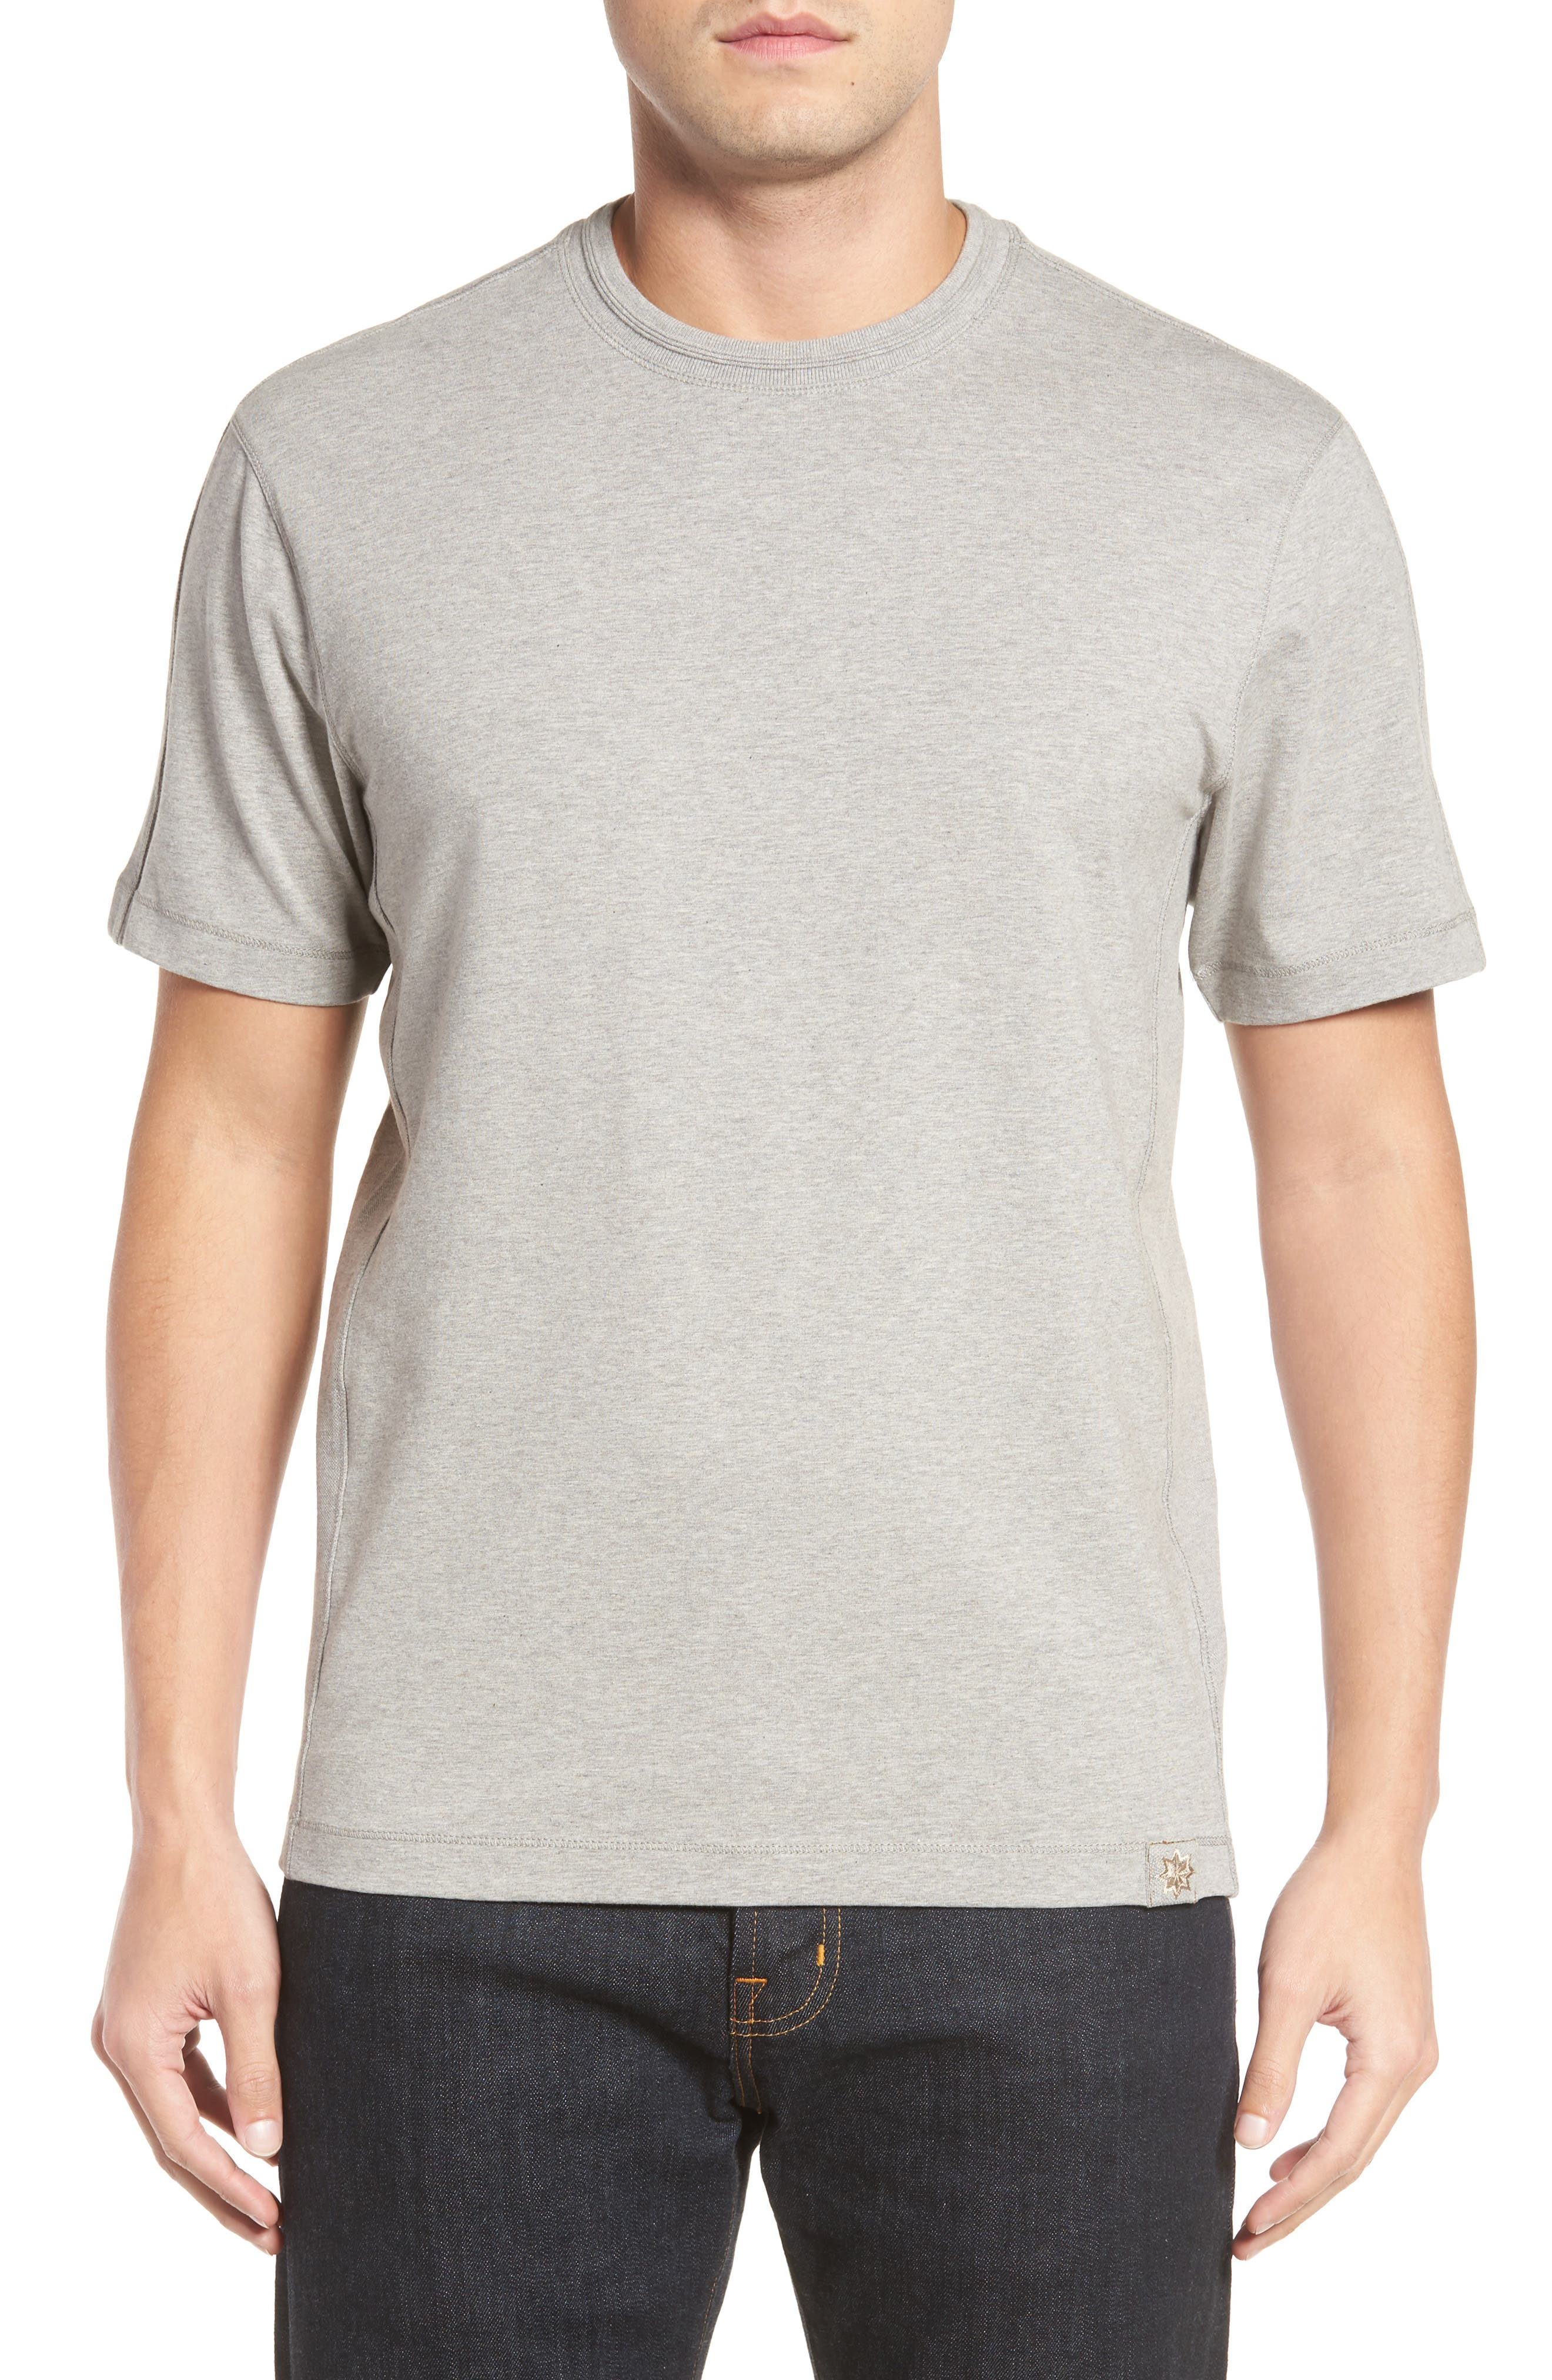 Steve Stretch Jersey T-Shirt,                         Main,                         color,